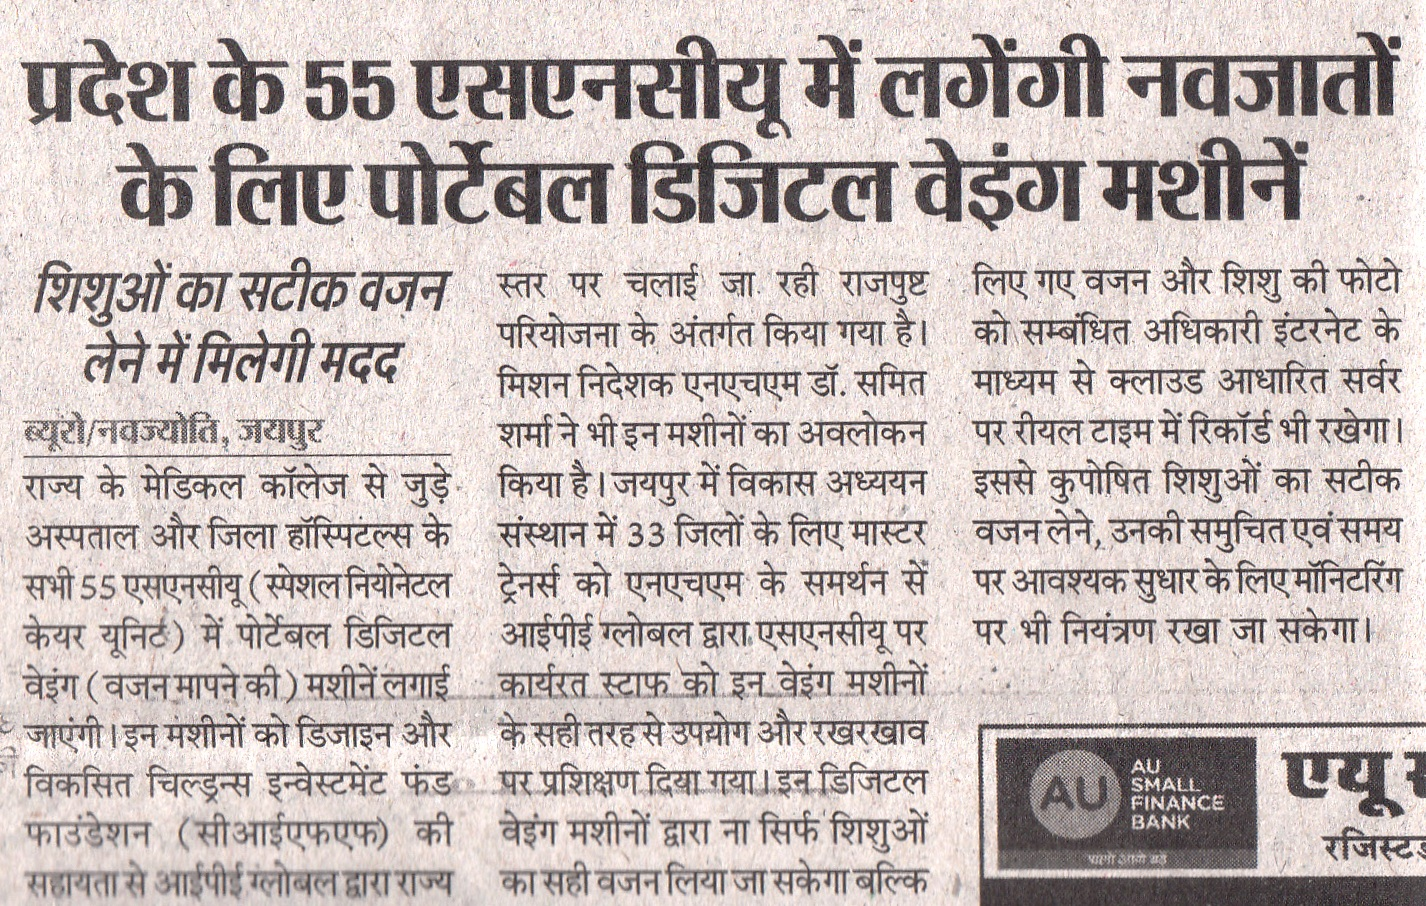 IPE Global features in Dainik Navjyoti for installing portable weighing machines at all 55 SNCU's in Rajasthan